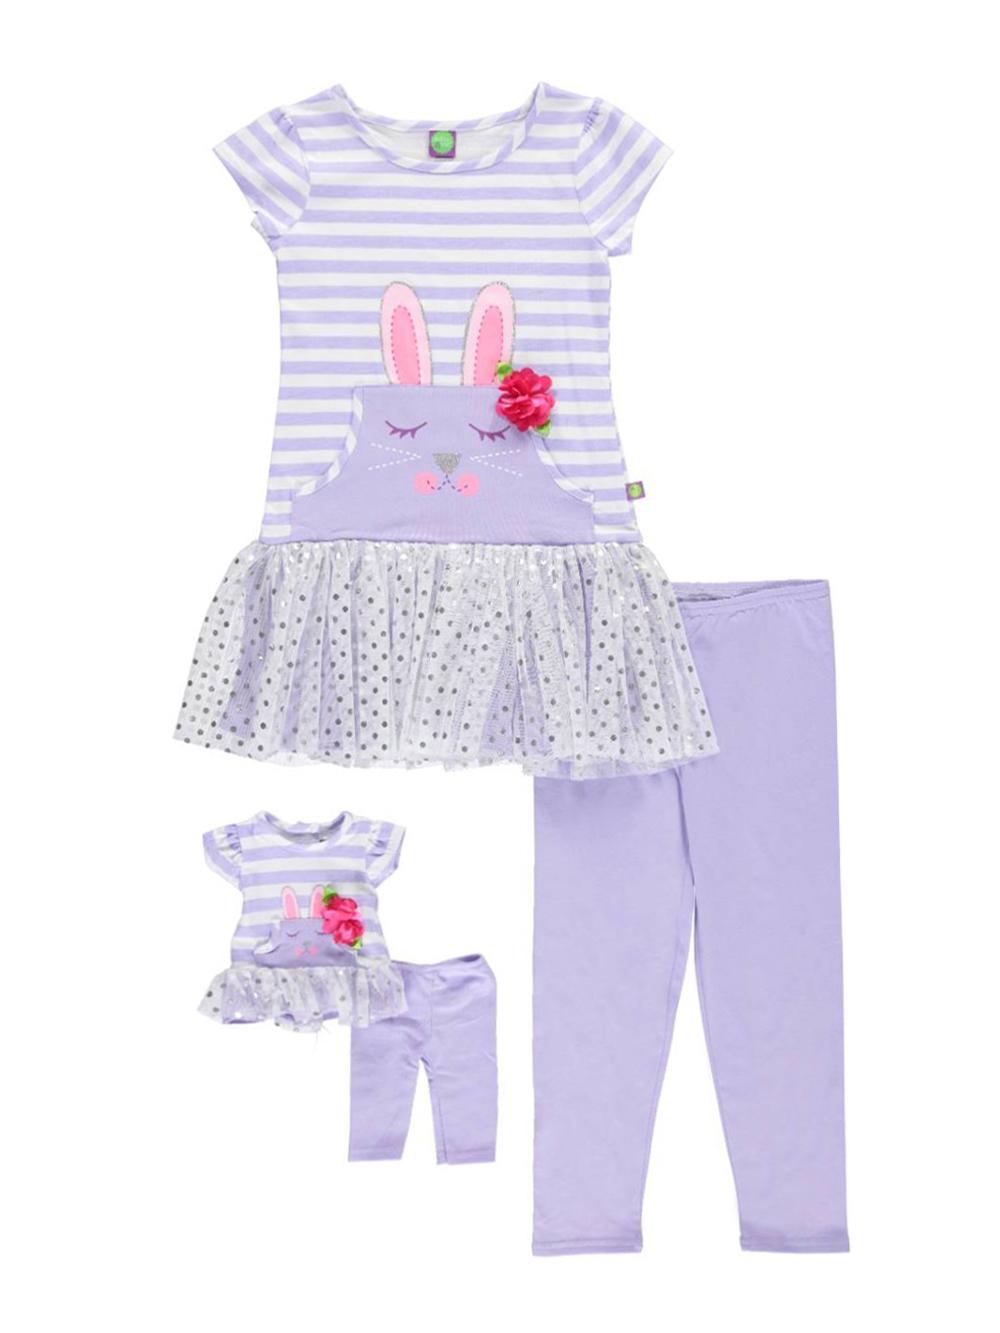 Image of Dollie  Me Little Girls Sweet Bunny 2Piece Outfit with Doll Outfit Sizes 4  6X